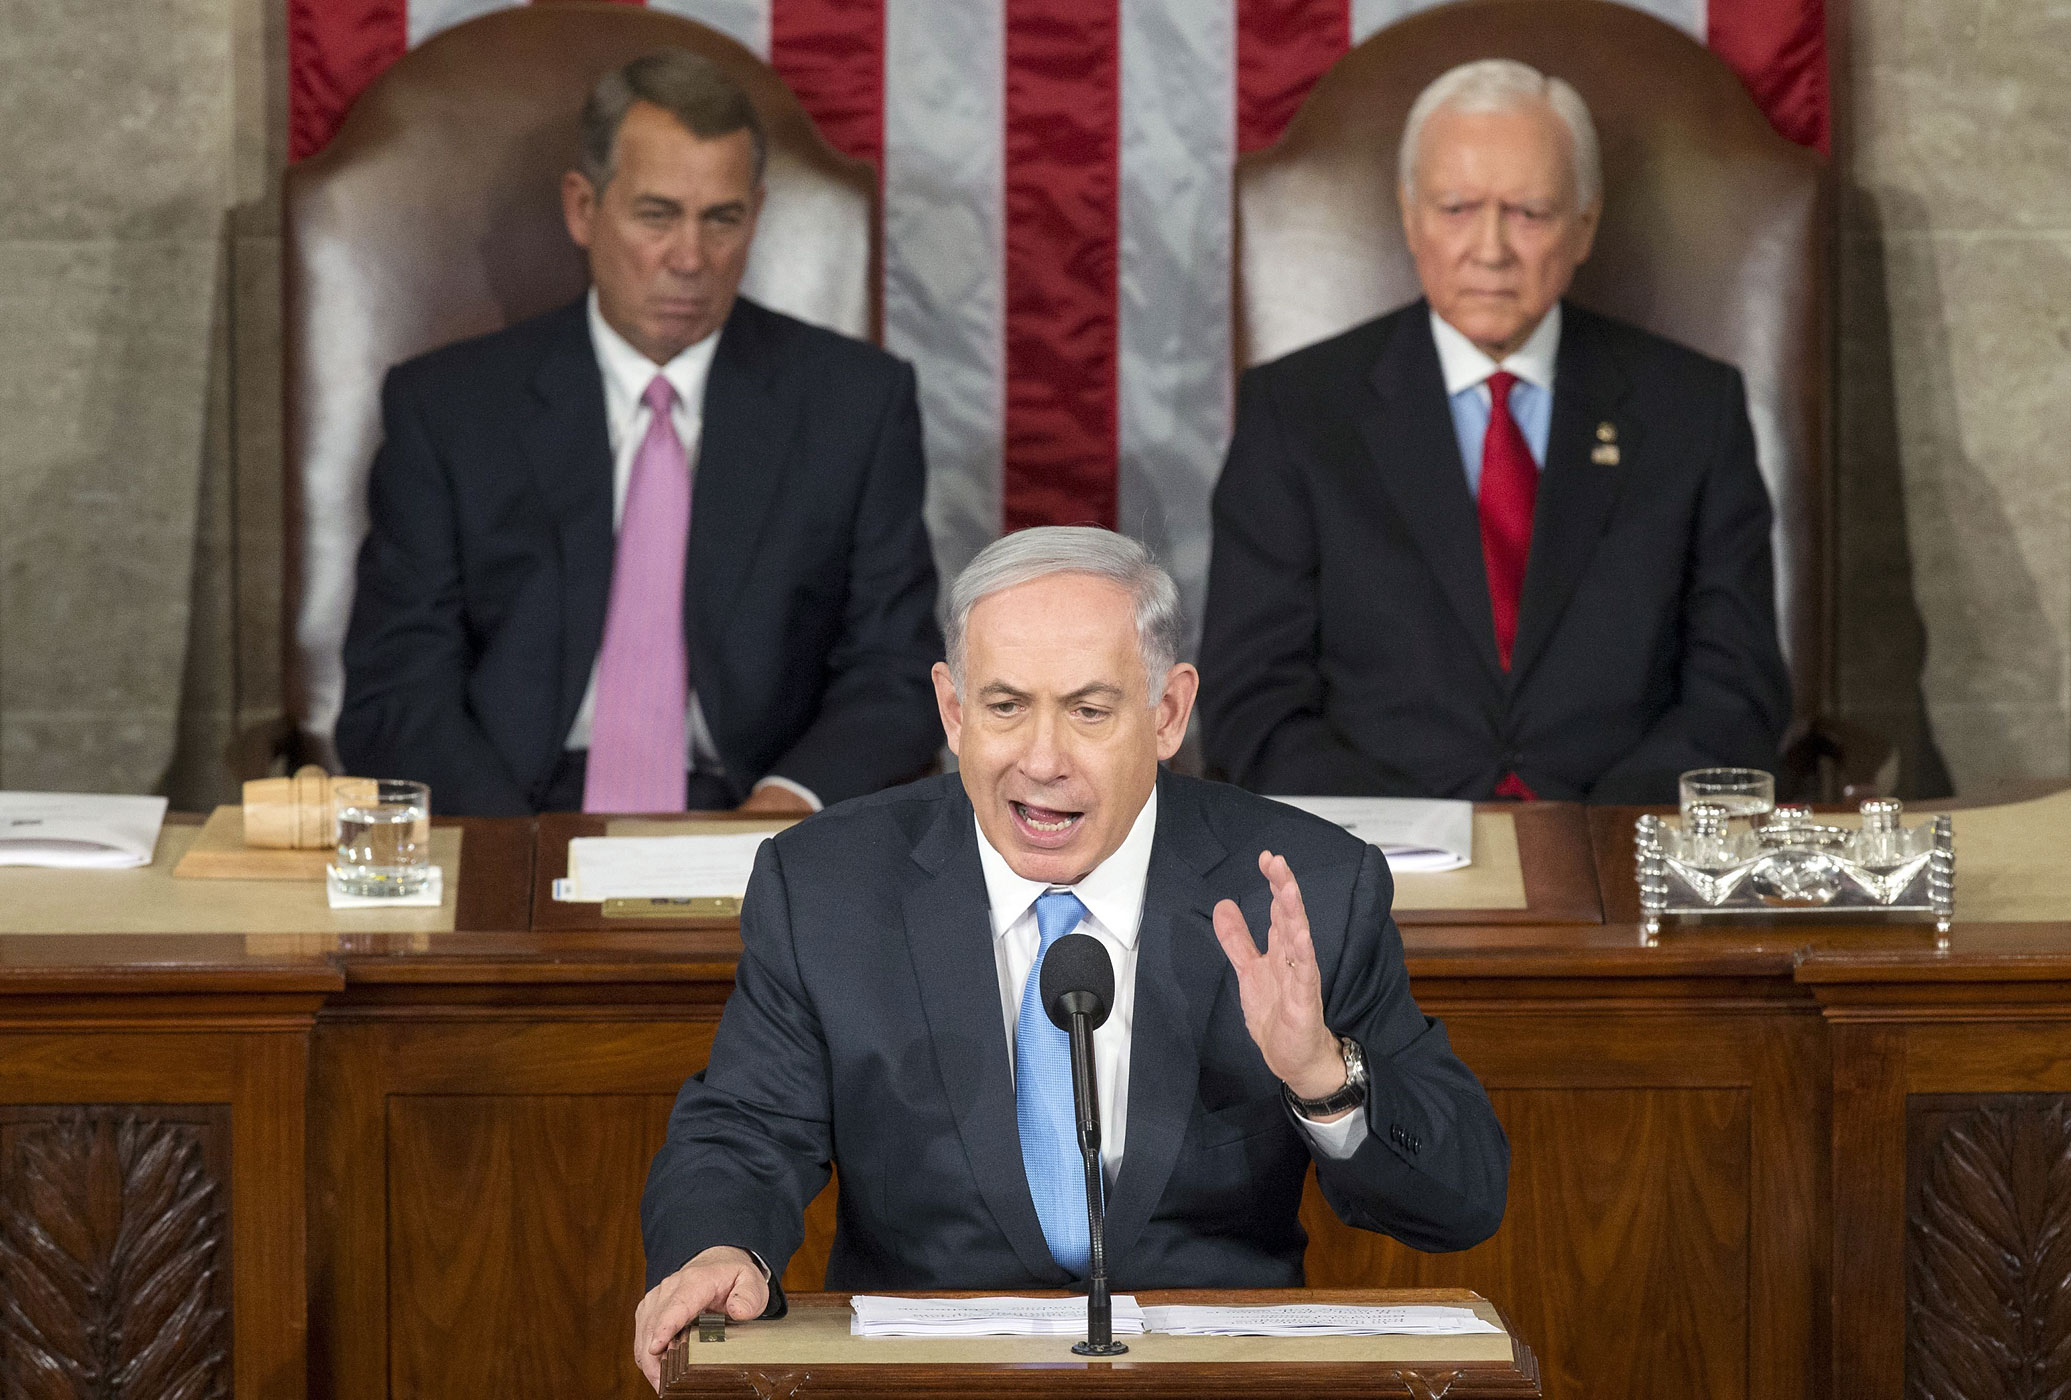 Israeli Prime Minister Benjamin Netanyahu delivers a speech to a joint meeting of Congress on the floor of the US House of Representatives in the US Capitol in Washington, DC on March 3, 2015.